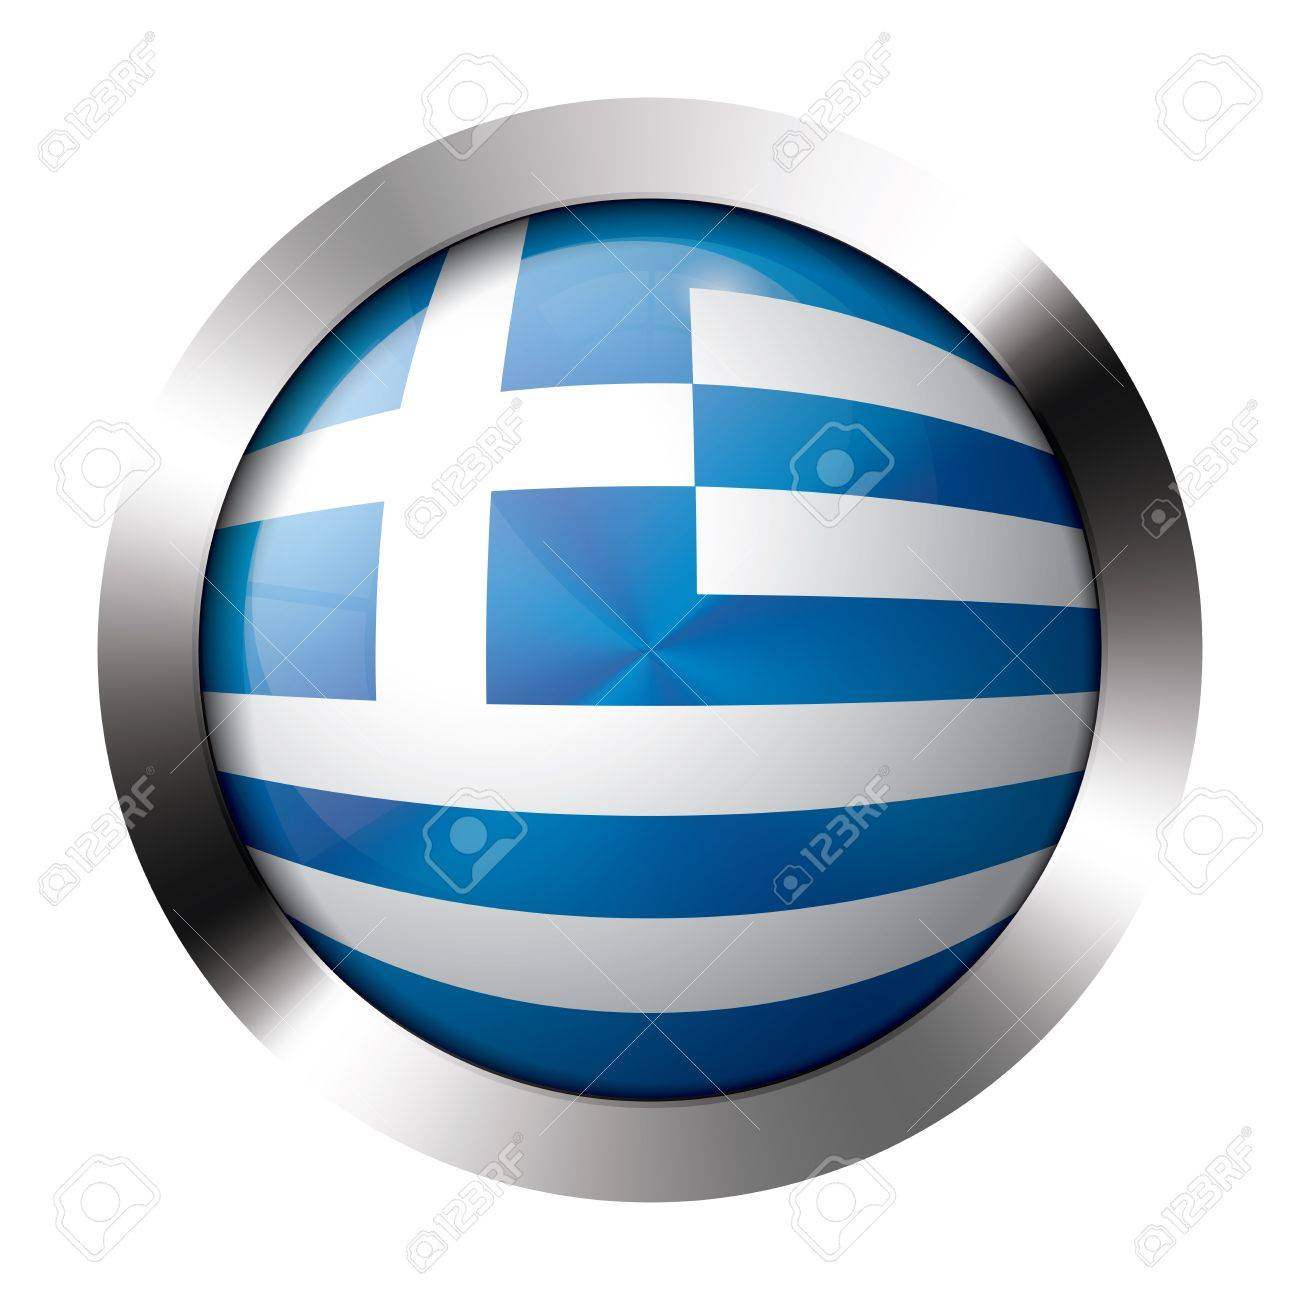 Round shiny metal button with flag of greece europe. Stock Vector - 15658884